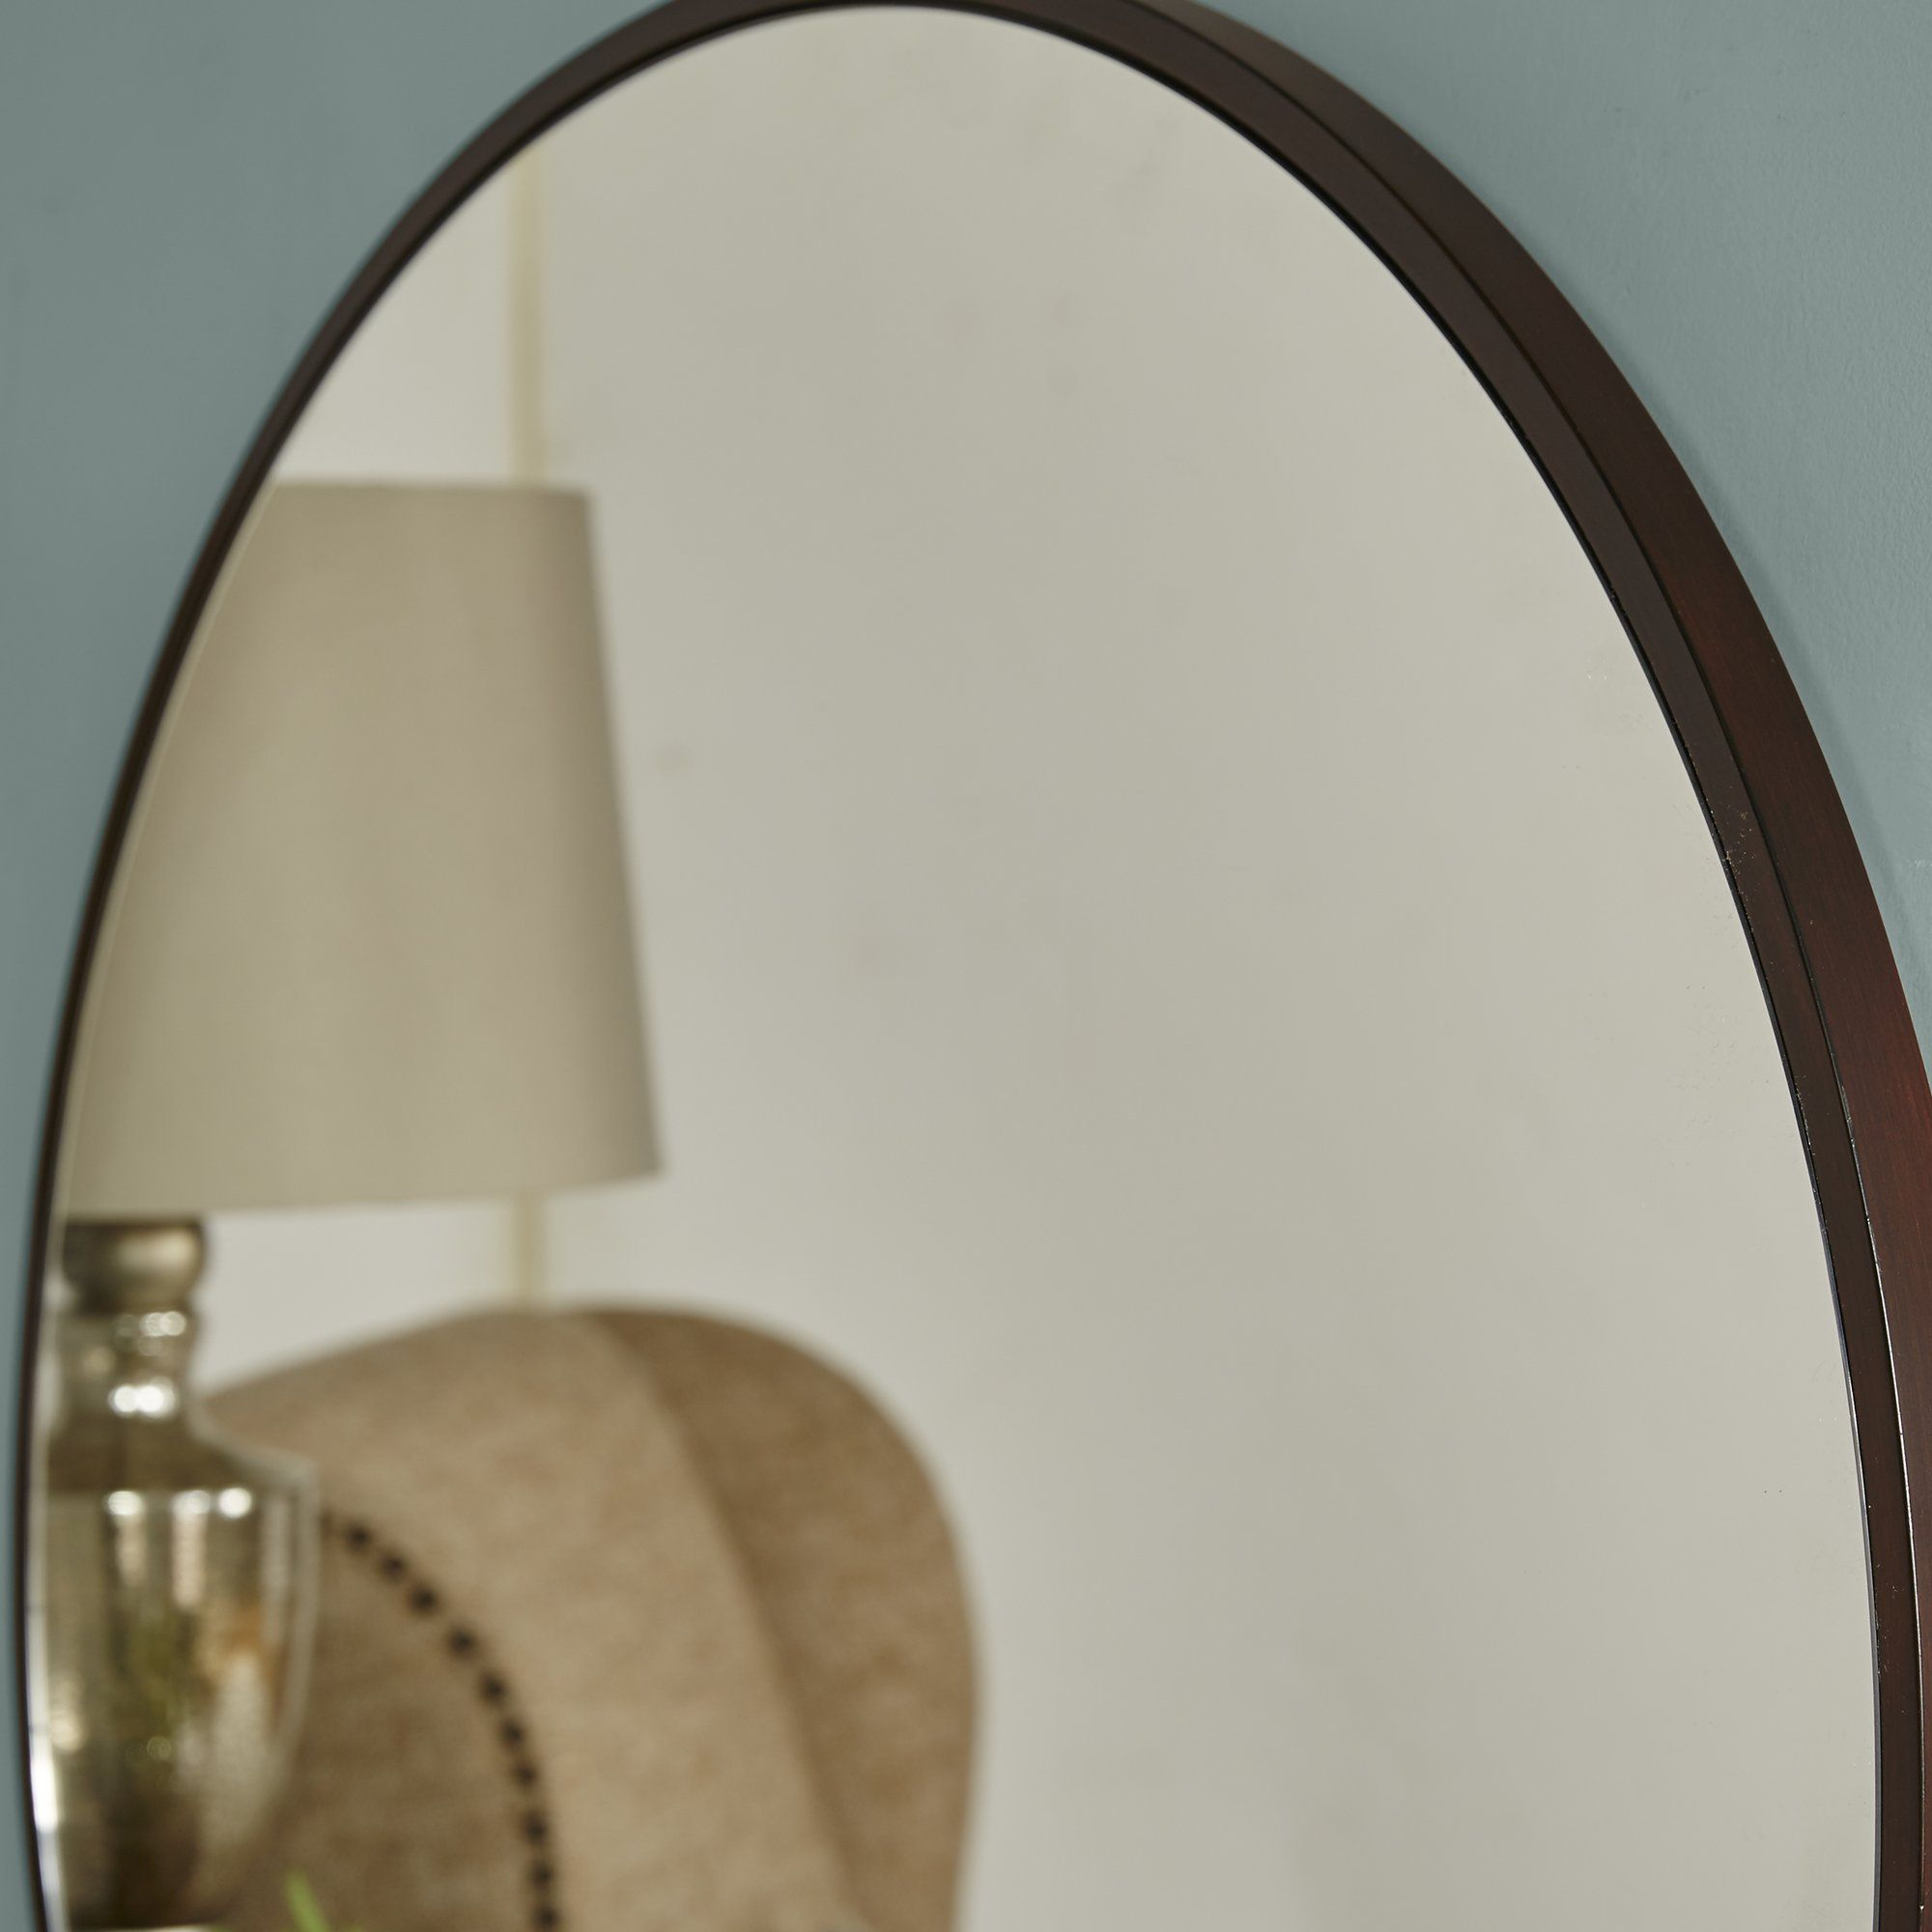 Levan Modern & Contemporary Beveled Accent Mirror | Mirrors Intended For Levan Modern & Contemporary Accent Mirrors (View 6 of 20)